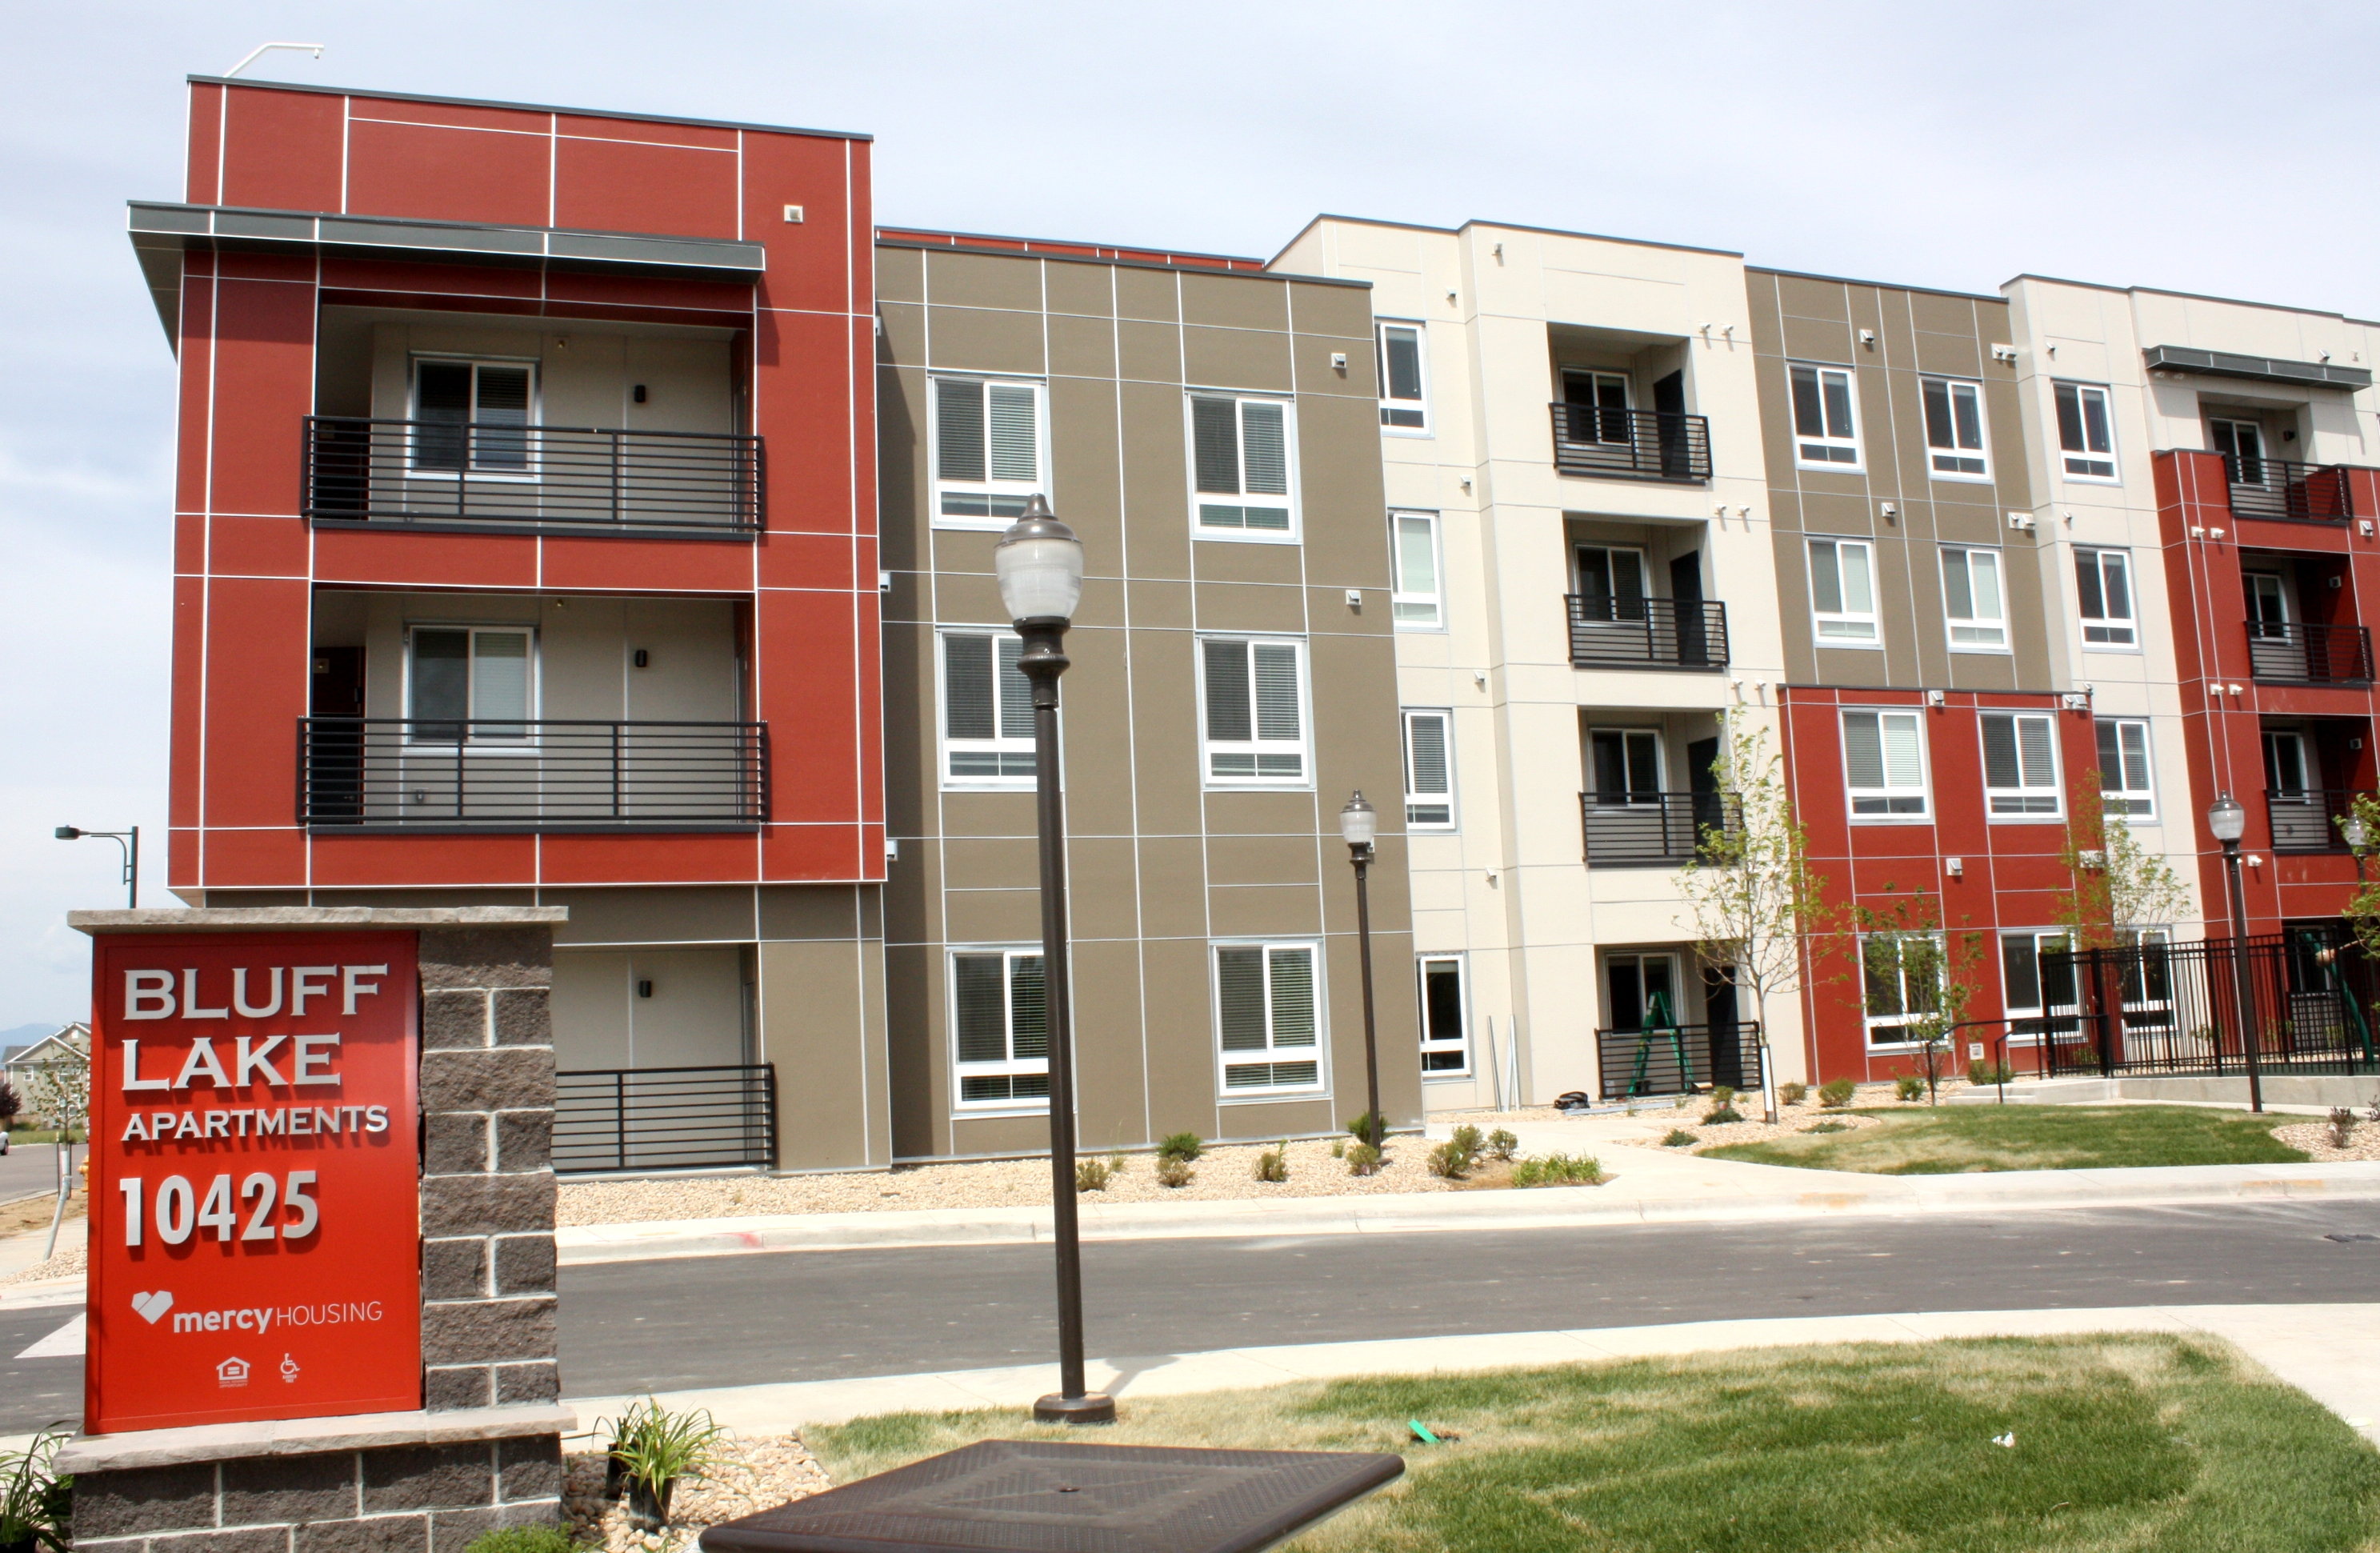 About low earnings affordable housing in stapleton denver cost-effective